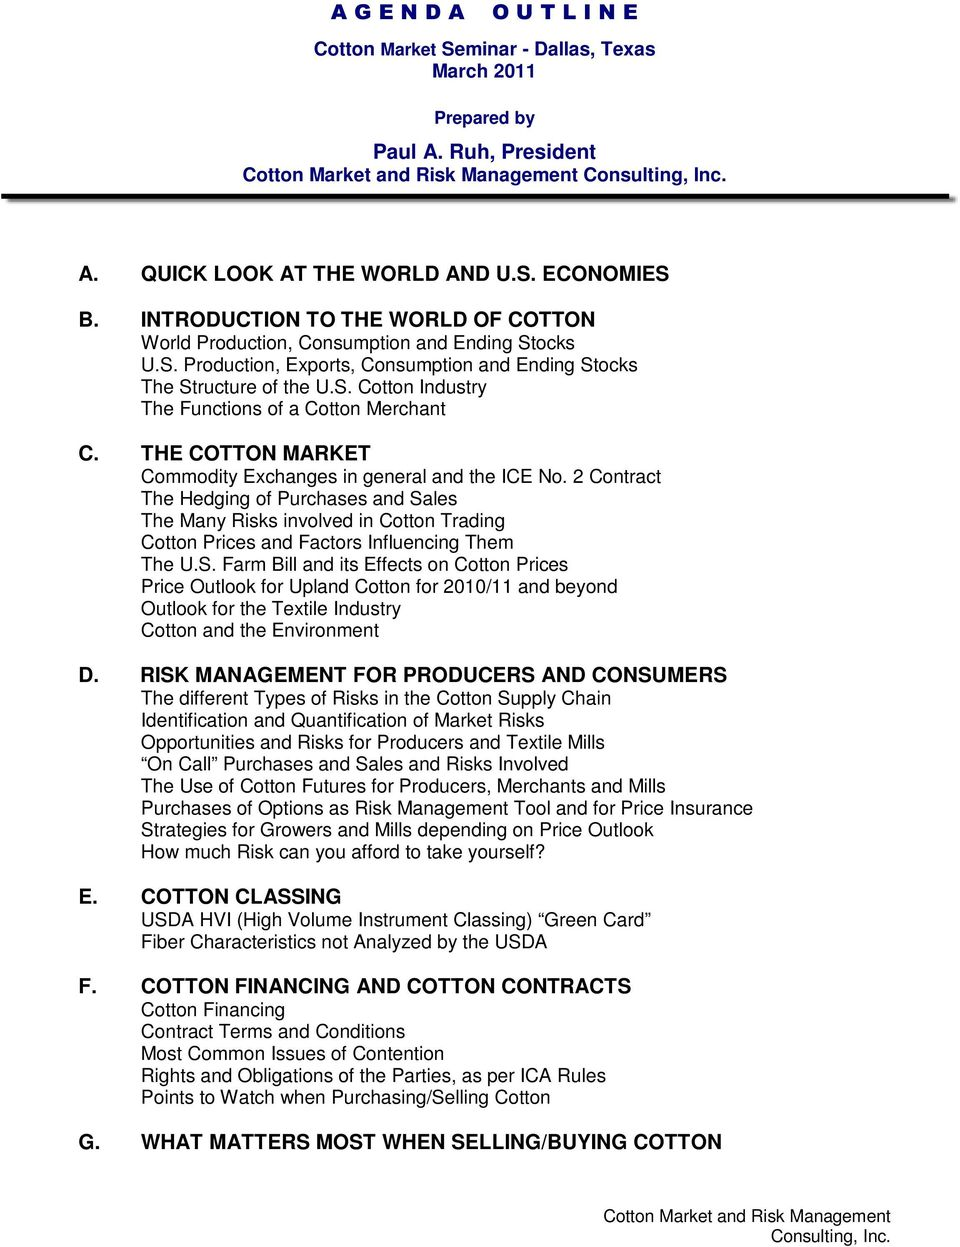 THE COTTON MARKET Commodity Exchanges in general and the ICE No.